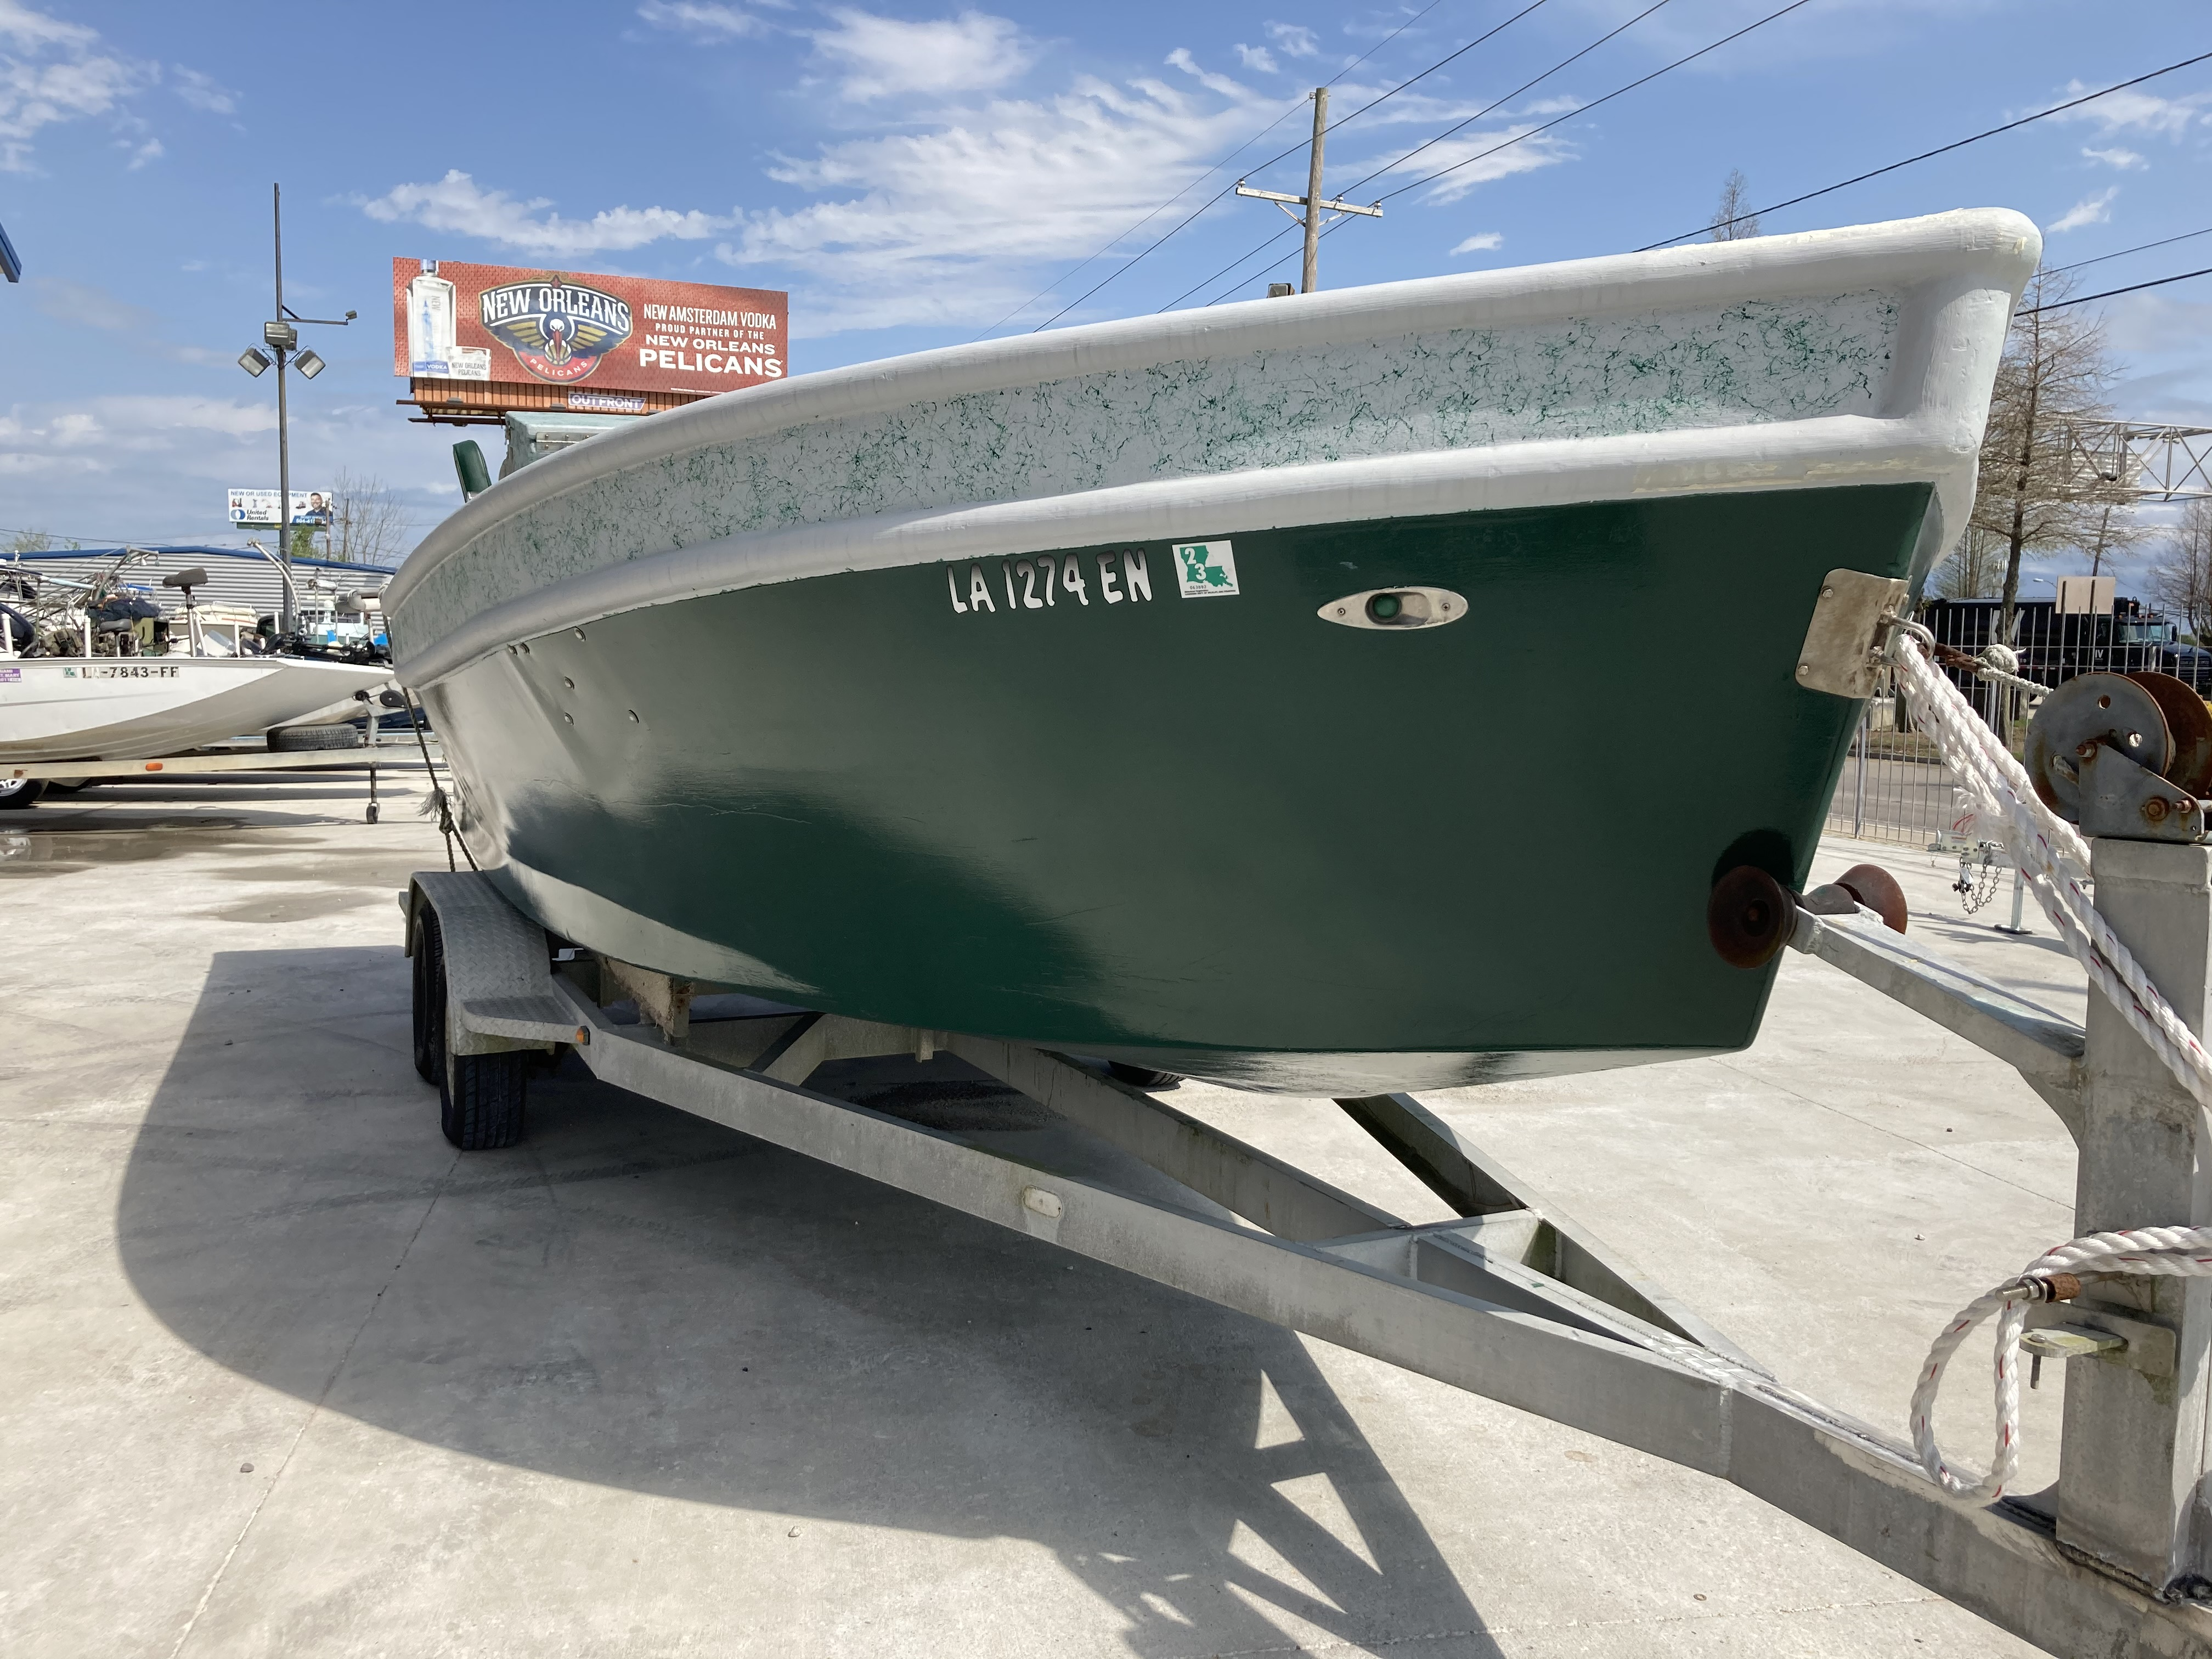 1994 Terrebonne boat for sale, model of the boat is 22ft & Image # 10 of 10